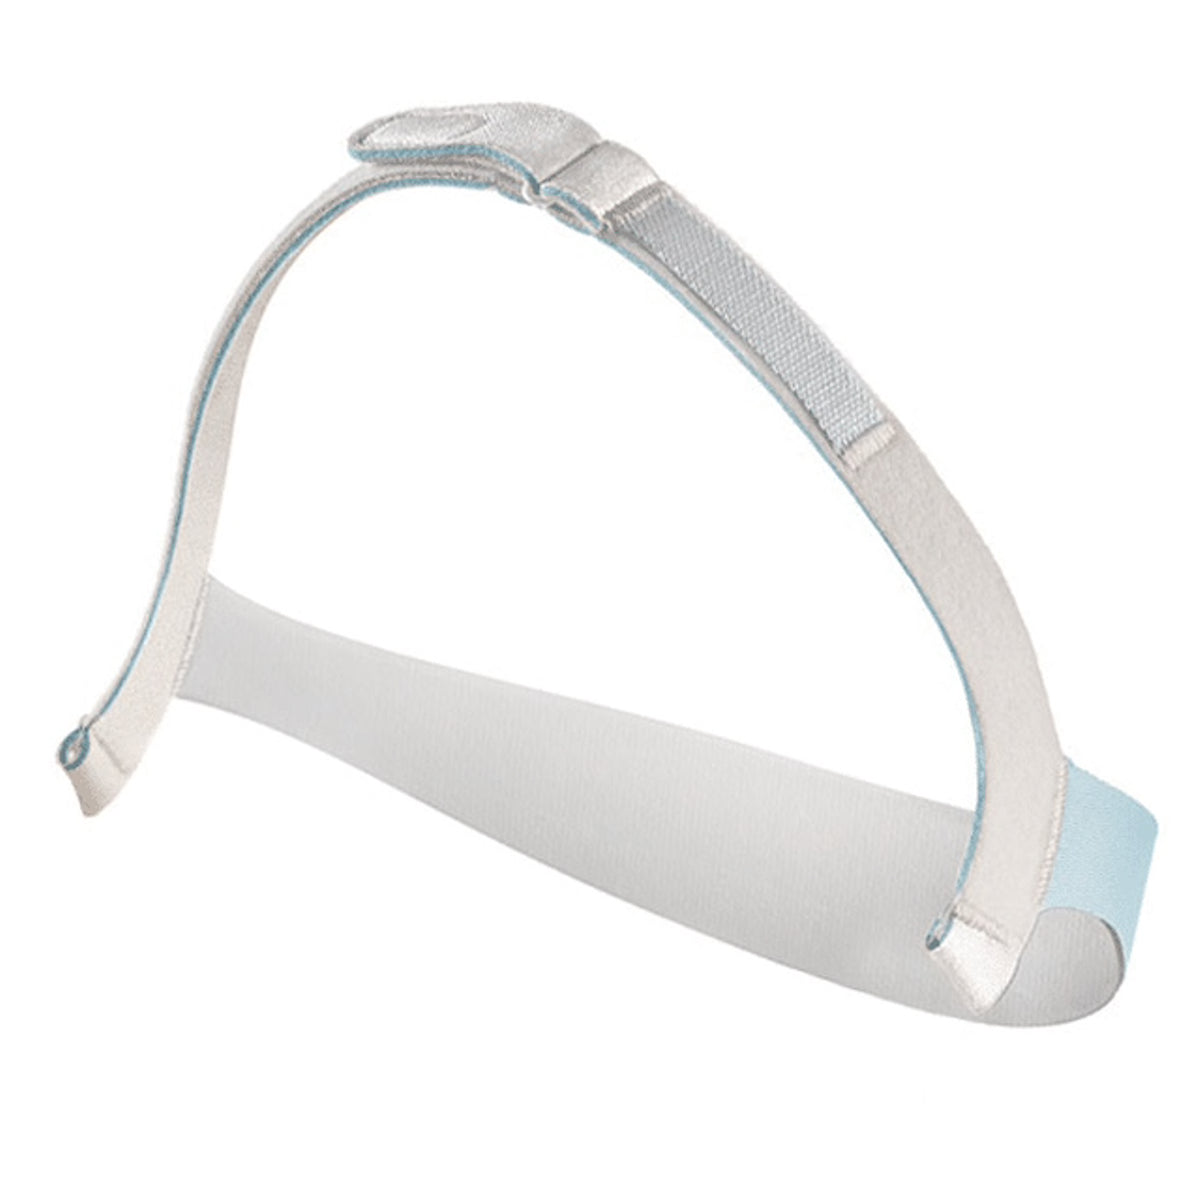 Phillips Respironics headgear from the Nuance Pro and Nuance Gel Pillow Mask